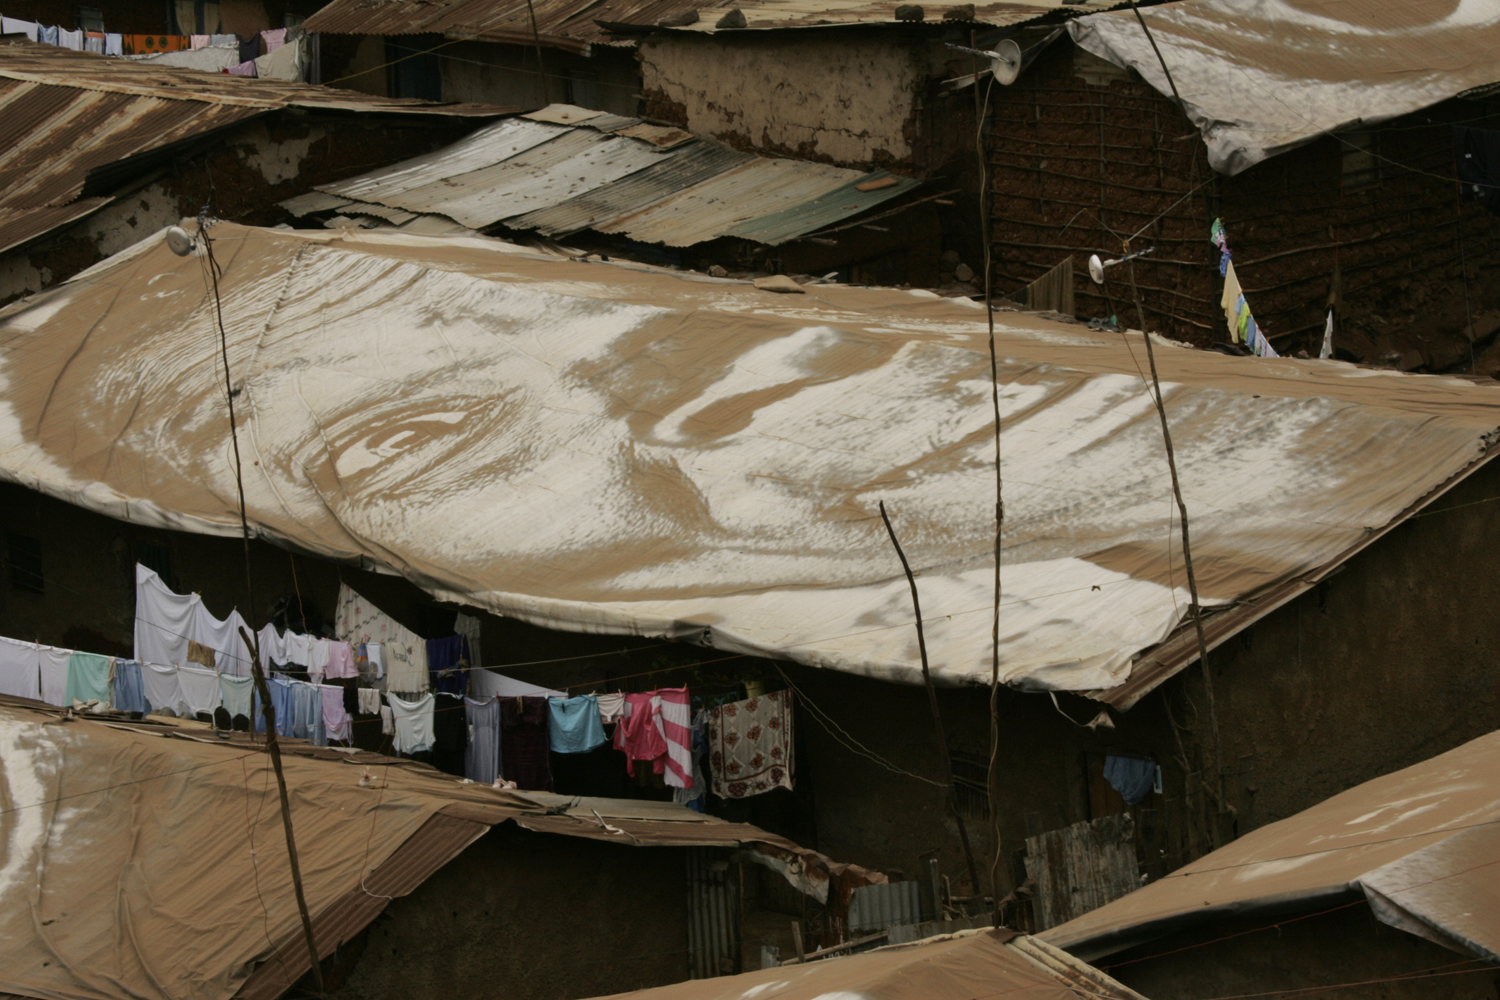 WOMEN: the slum of Kibera, seven months after the action; Nairobi, Kenya, from the series, Women Are Heroes, Aug. 6, 2009.